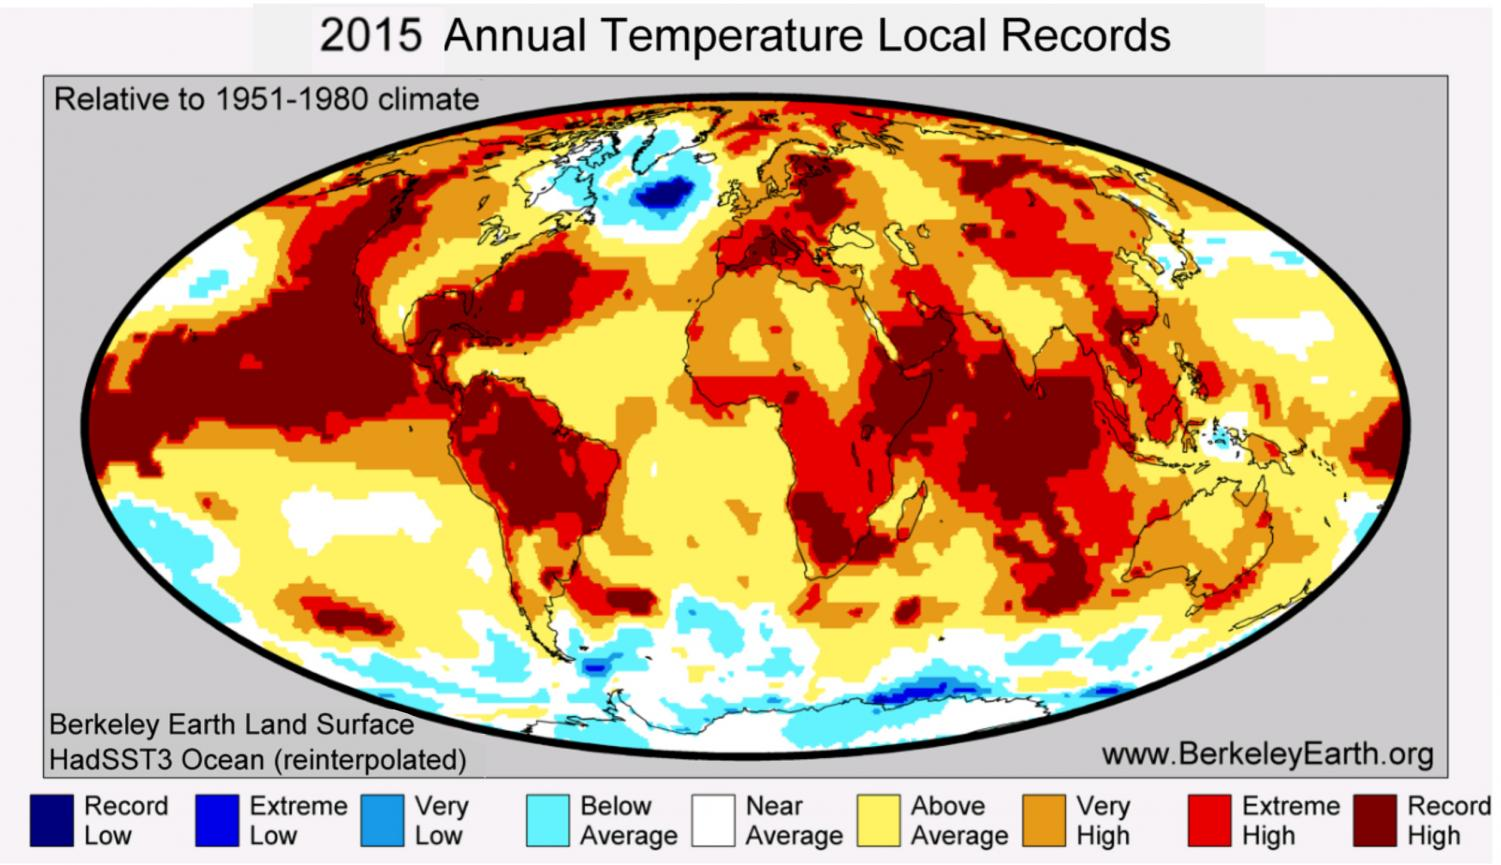 2015 annual temperatures show that in many locations there were record high temperatures. There were also record lows in a few locations.